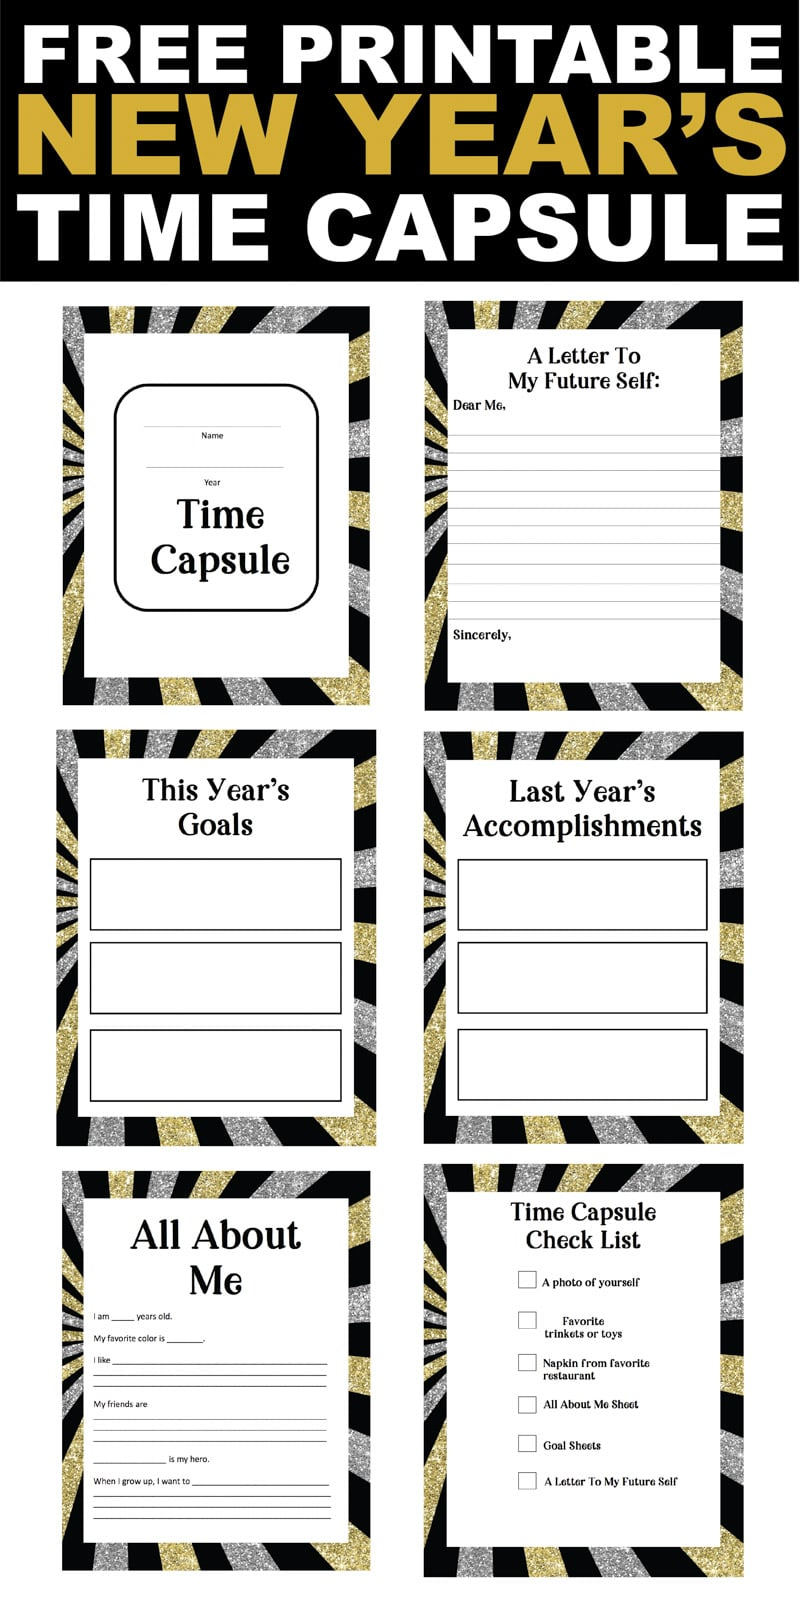 This New Year's Eve time capsule is such a fun activity for kids or adults! Comes with free printable pages, suggestions of what to put in a time capsule, and great DIY ideas!